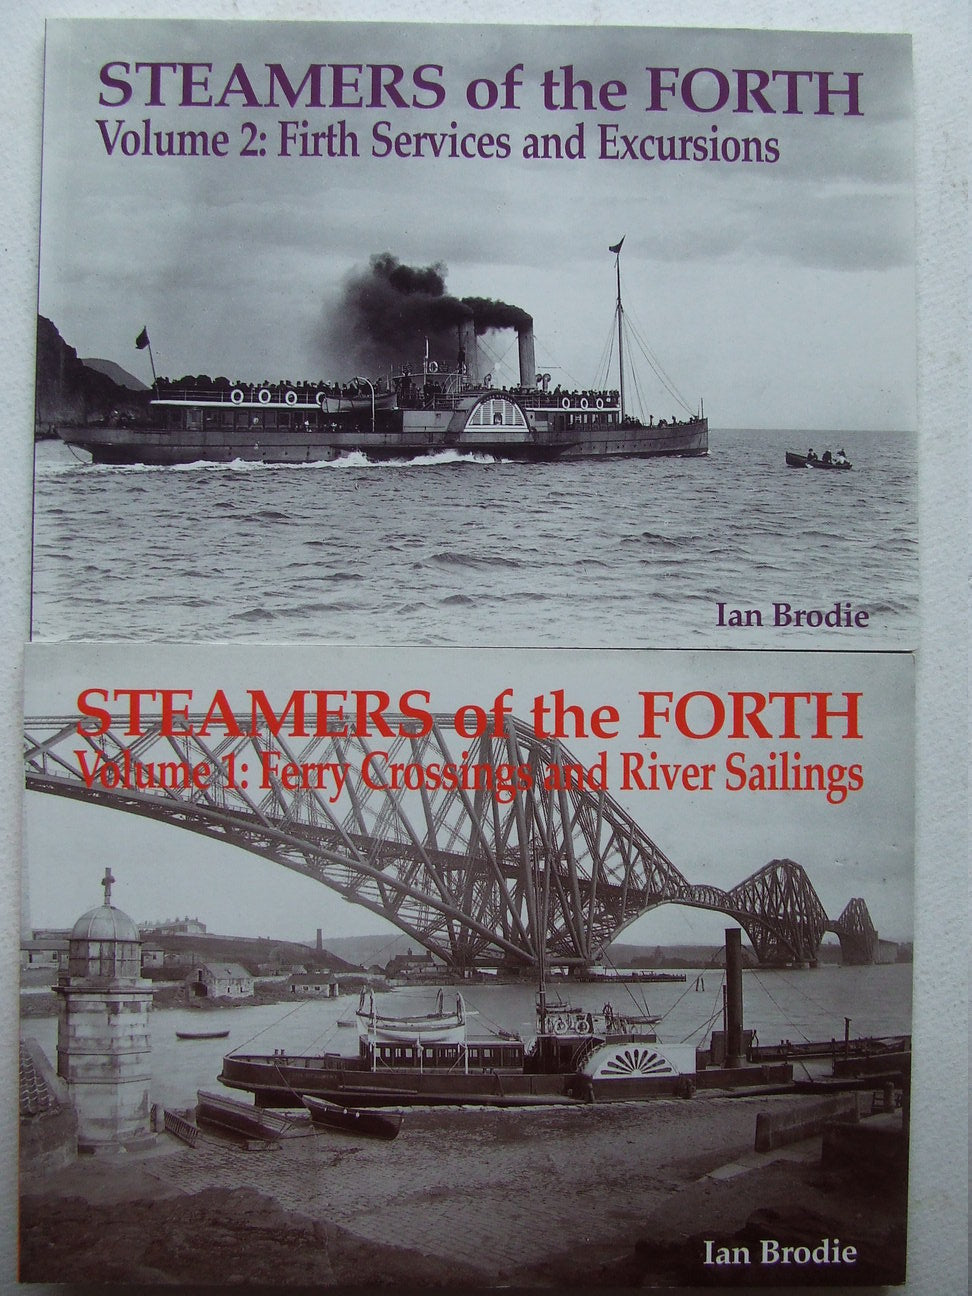 Steamers of the Forth [photographs]